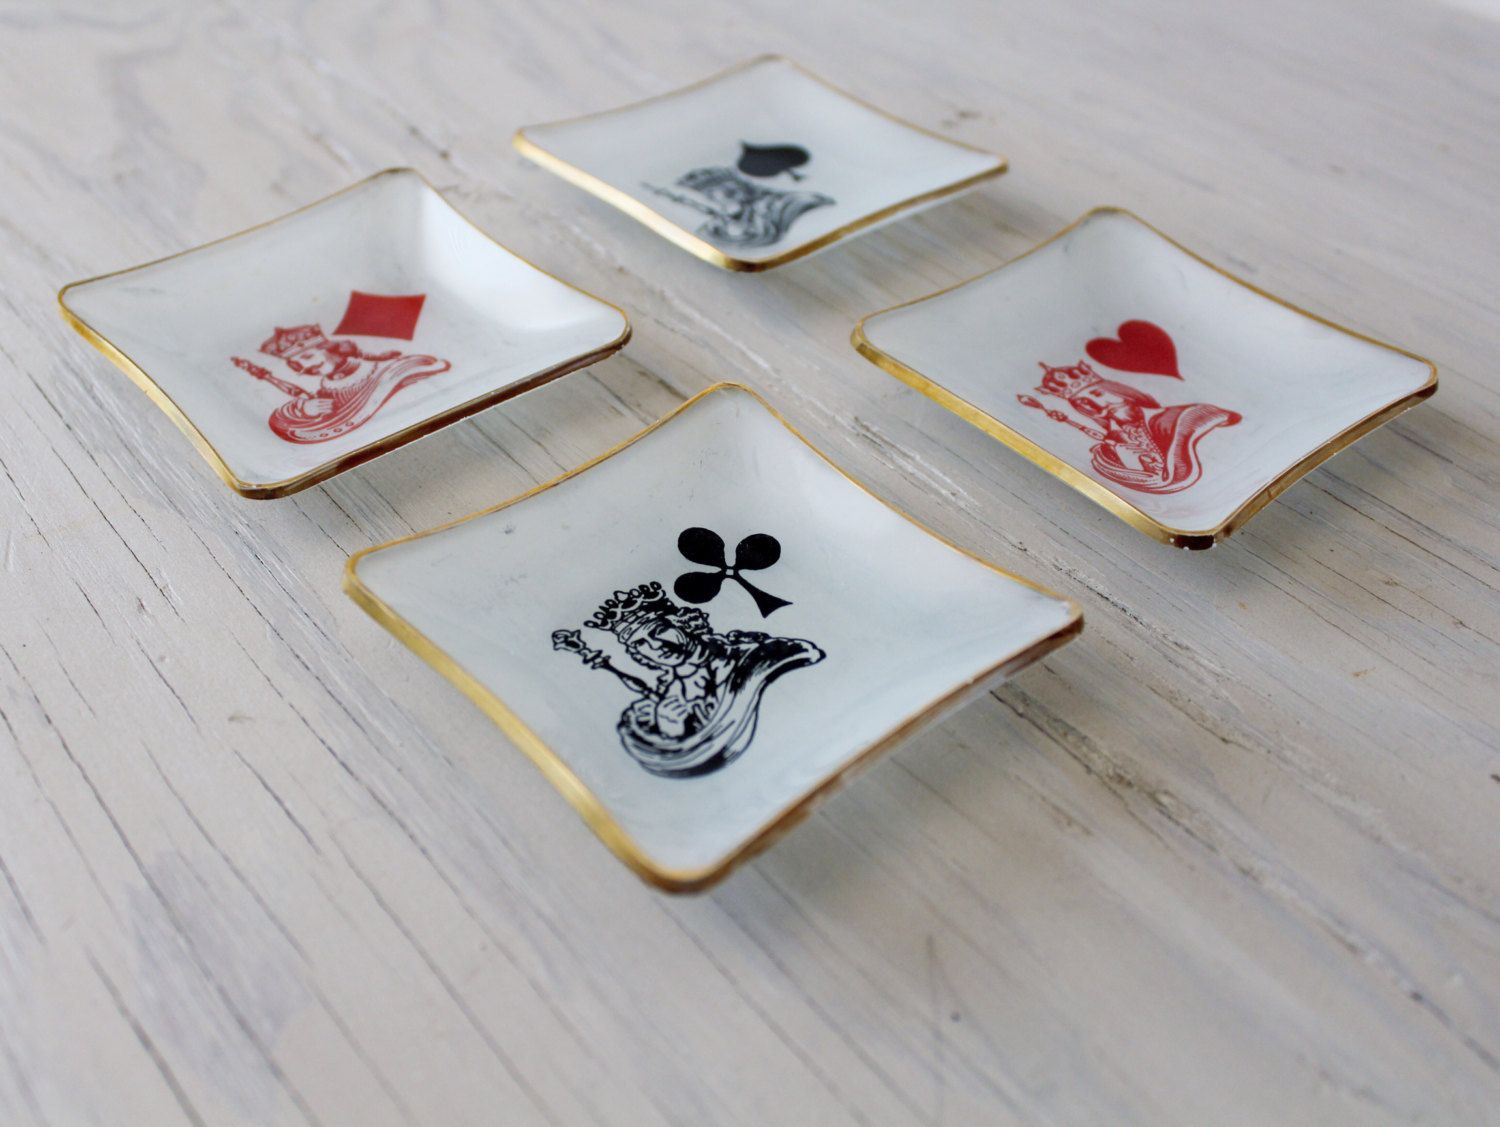 Show off your love of card games with unique style! King of Diamonds and King of Hearts Rings made with Playing Cards and Resin